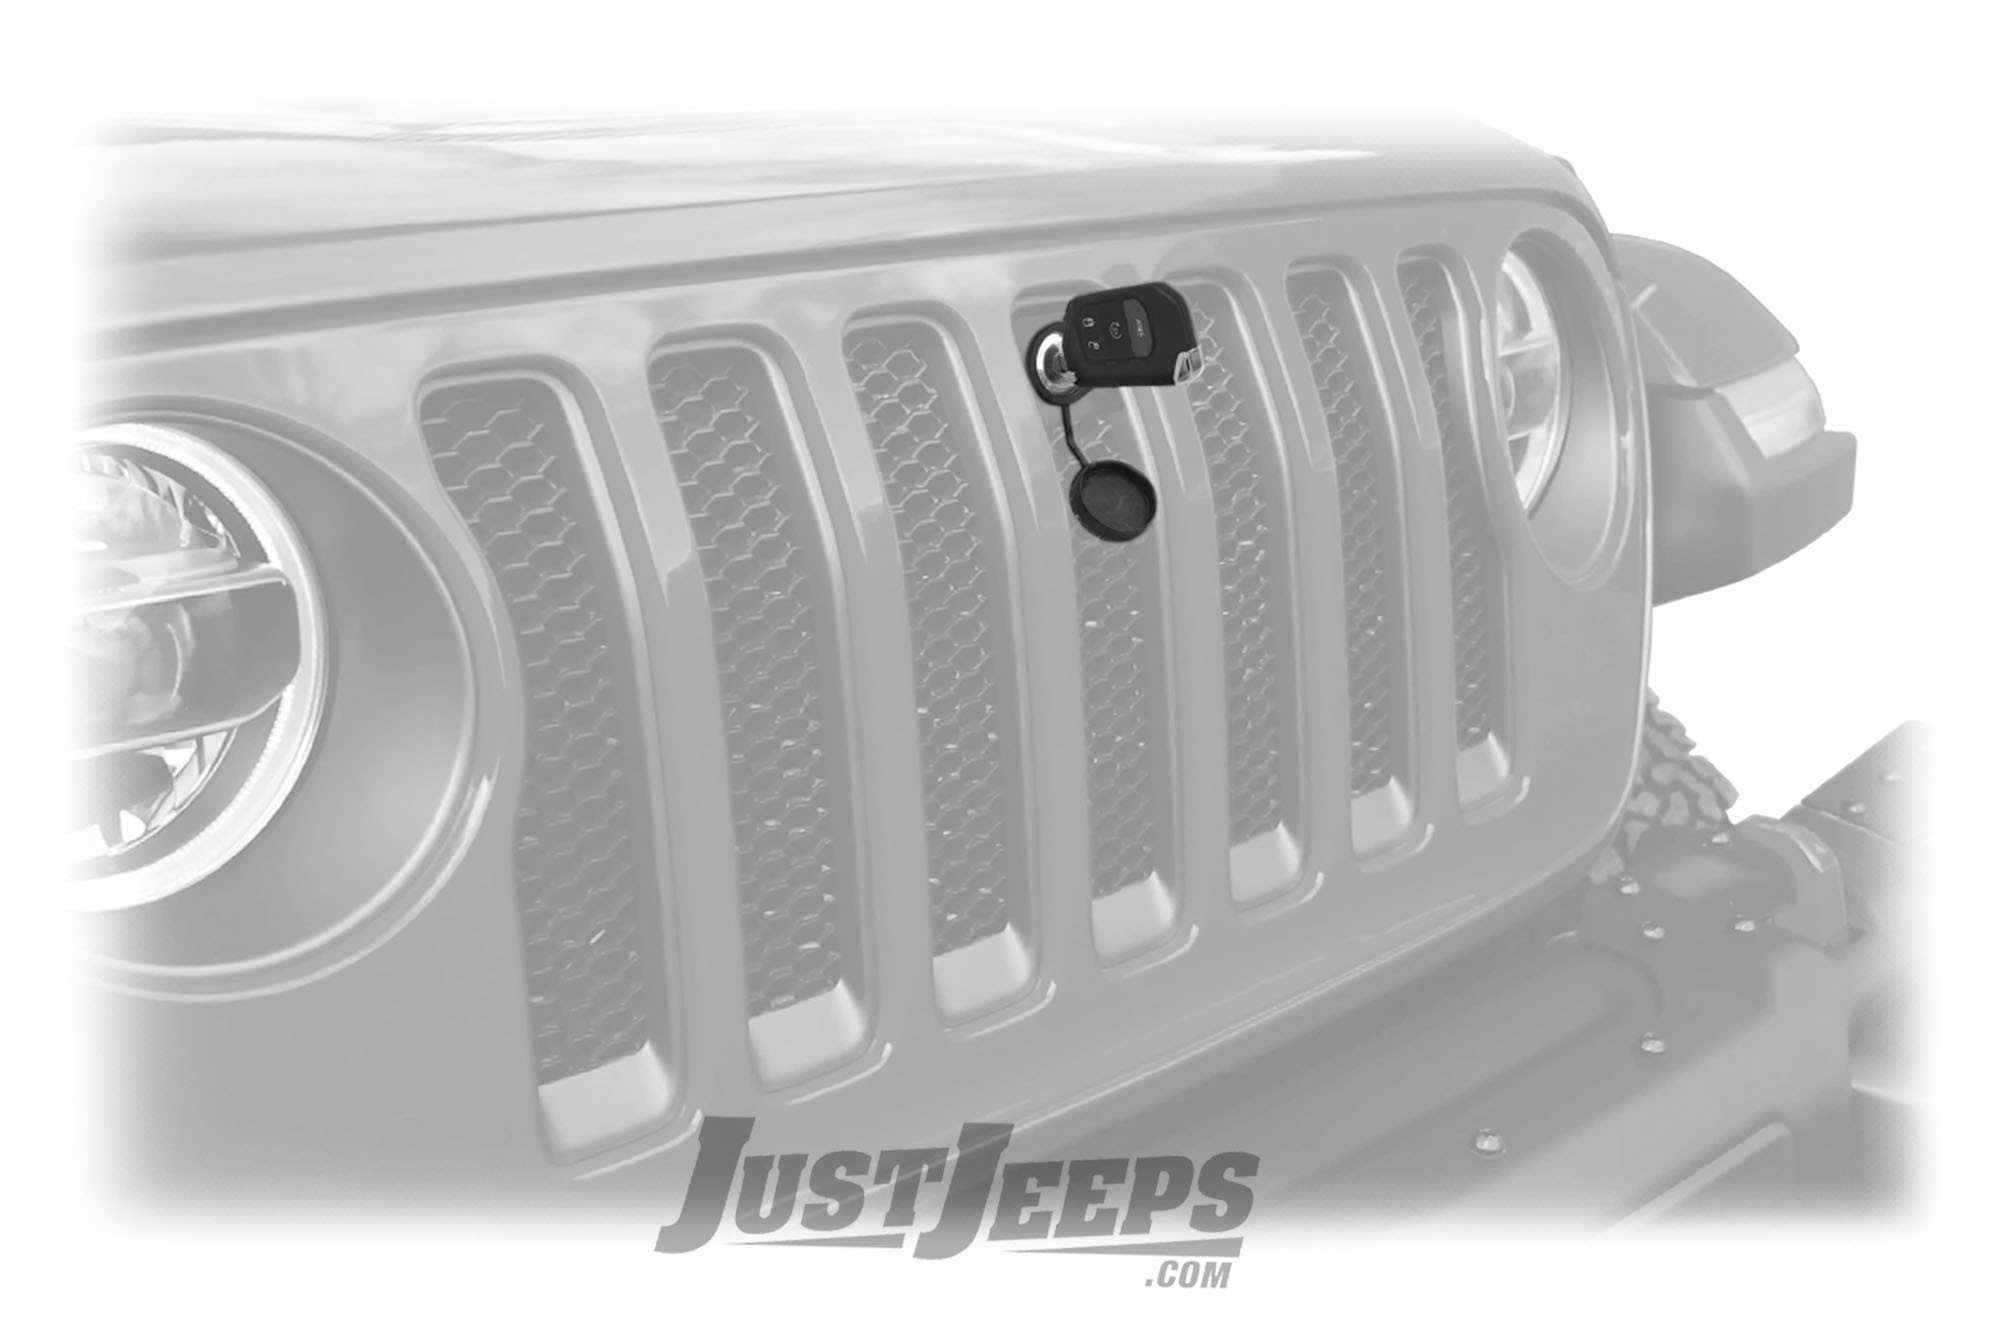 Jeep Wrangler YJ 1987-1995 Hood Lock Kit Protect your Engine and Lock your Hood